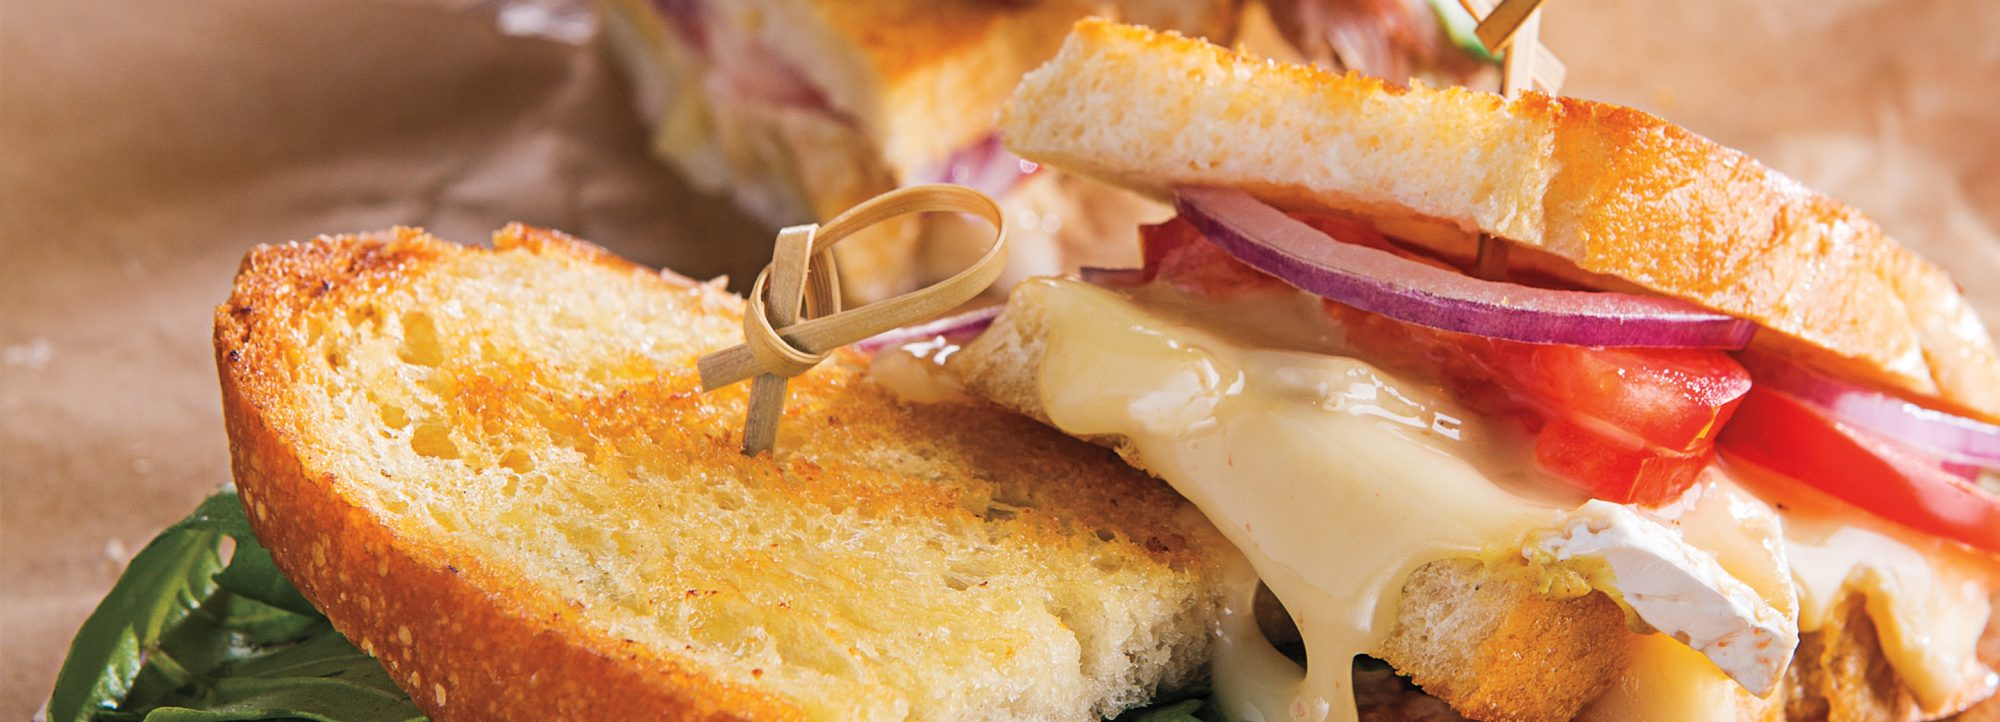 tomato brie red onion grilled cheese